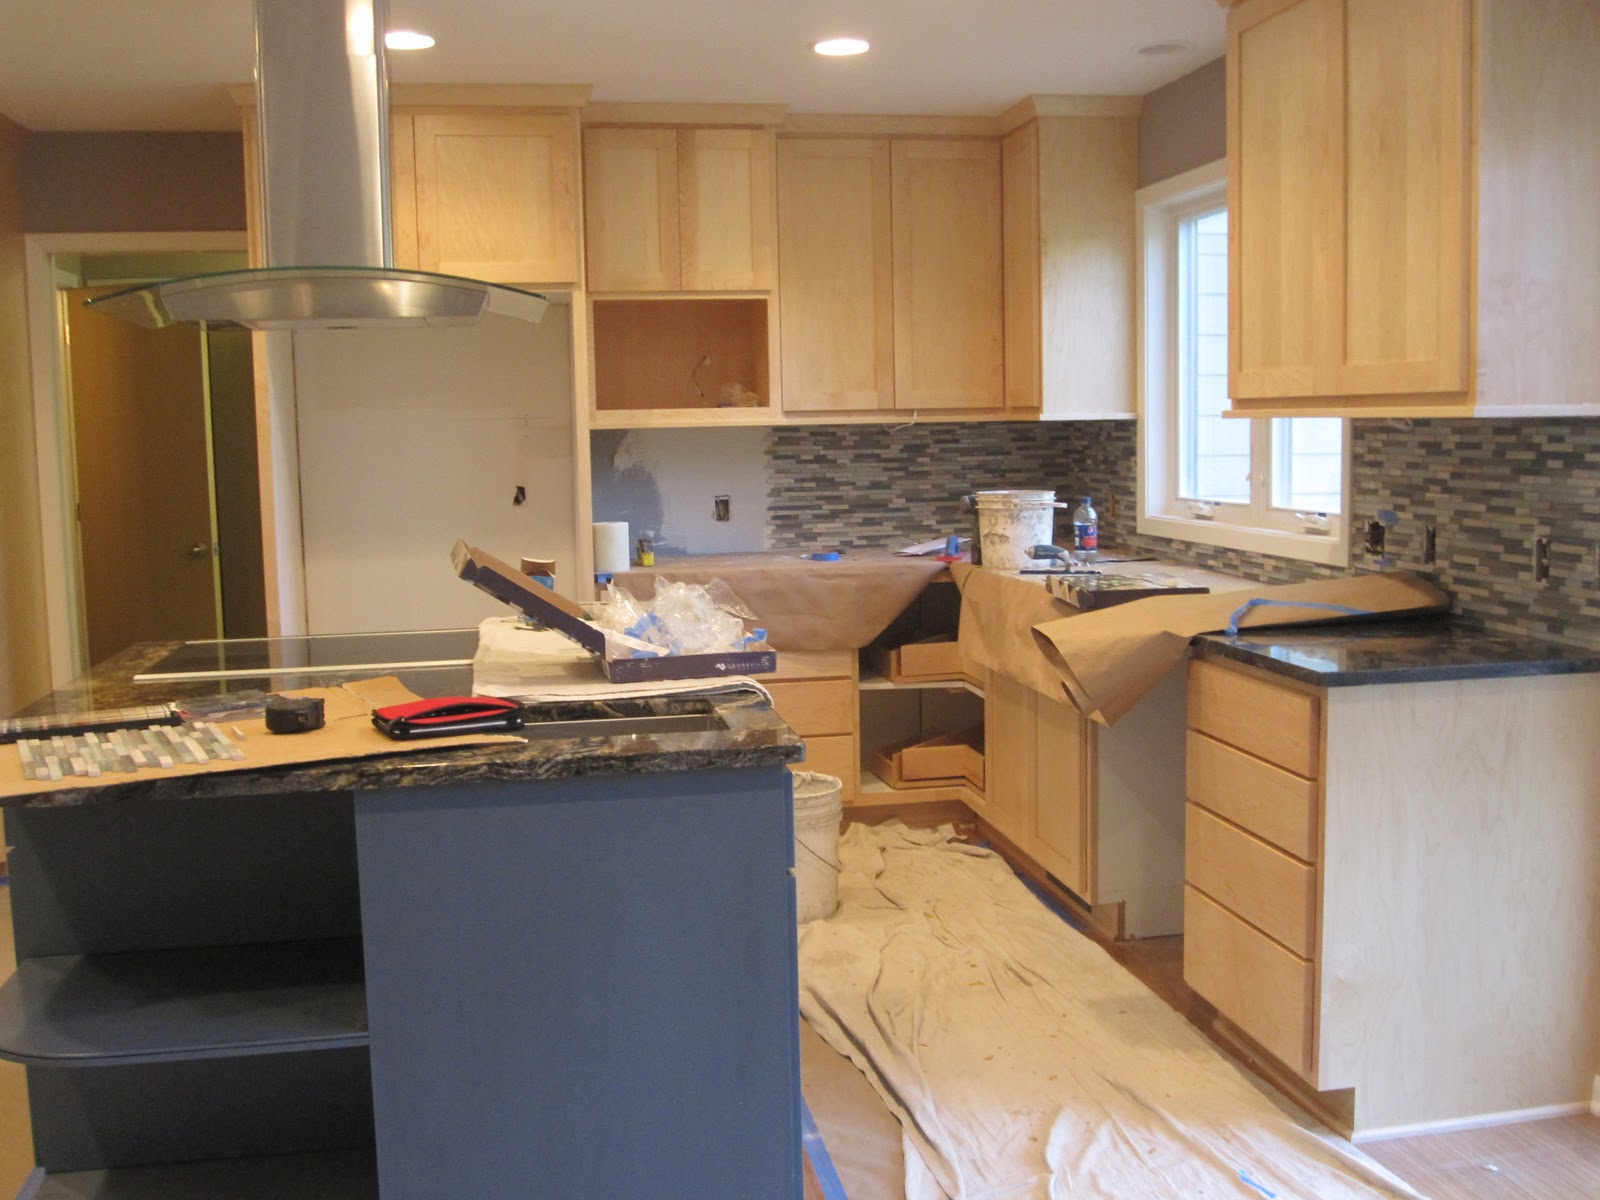 Larger view of kitchen showing maple cabinetry, new tile mosaic